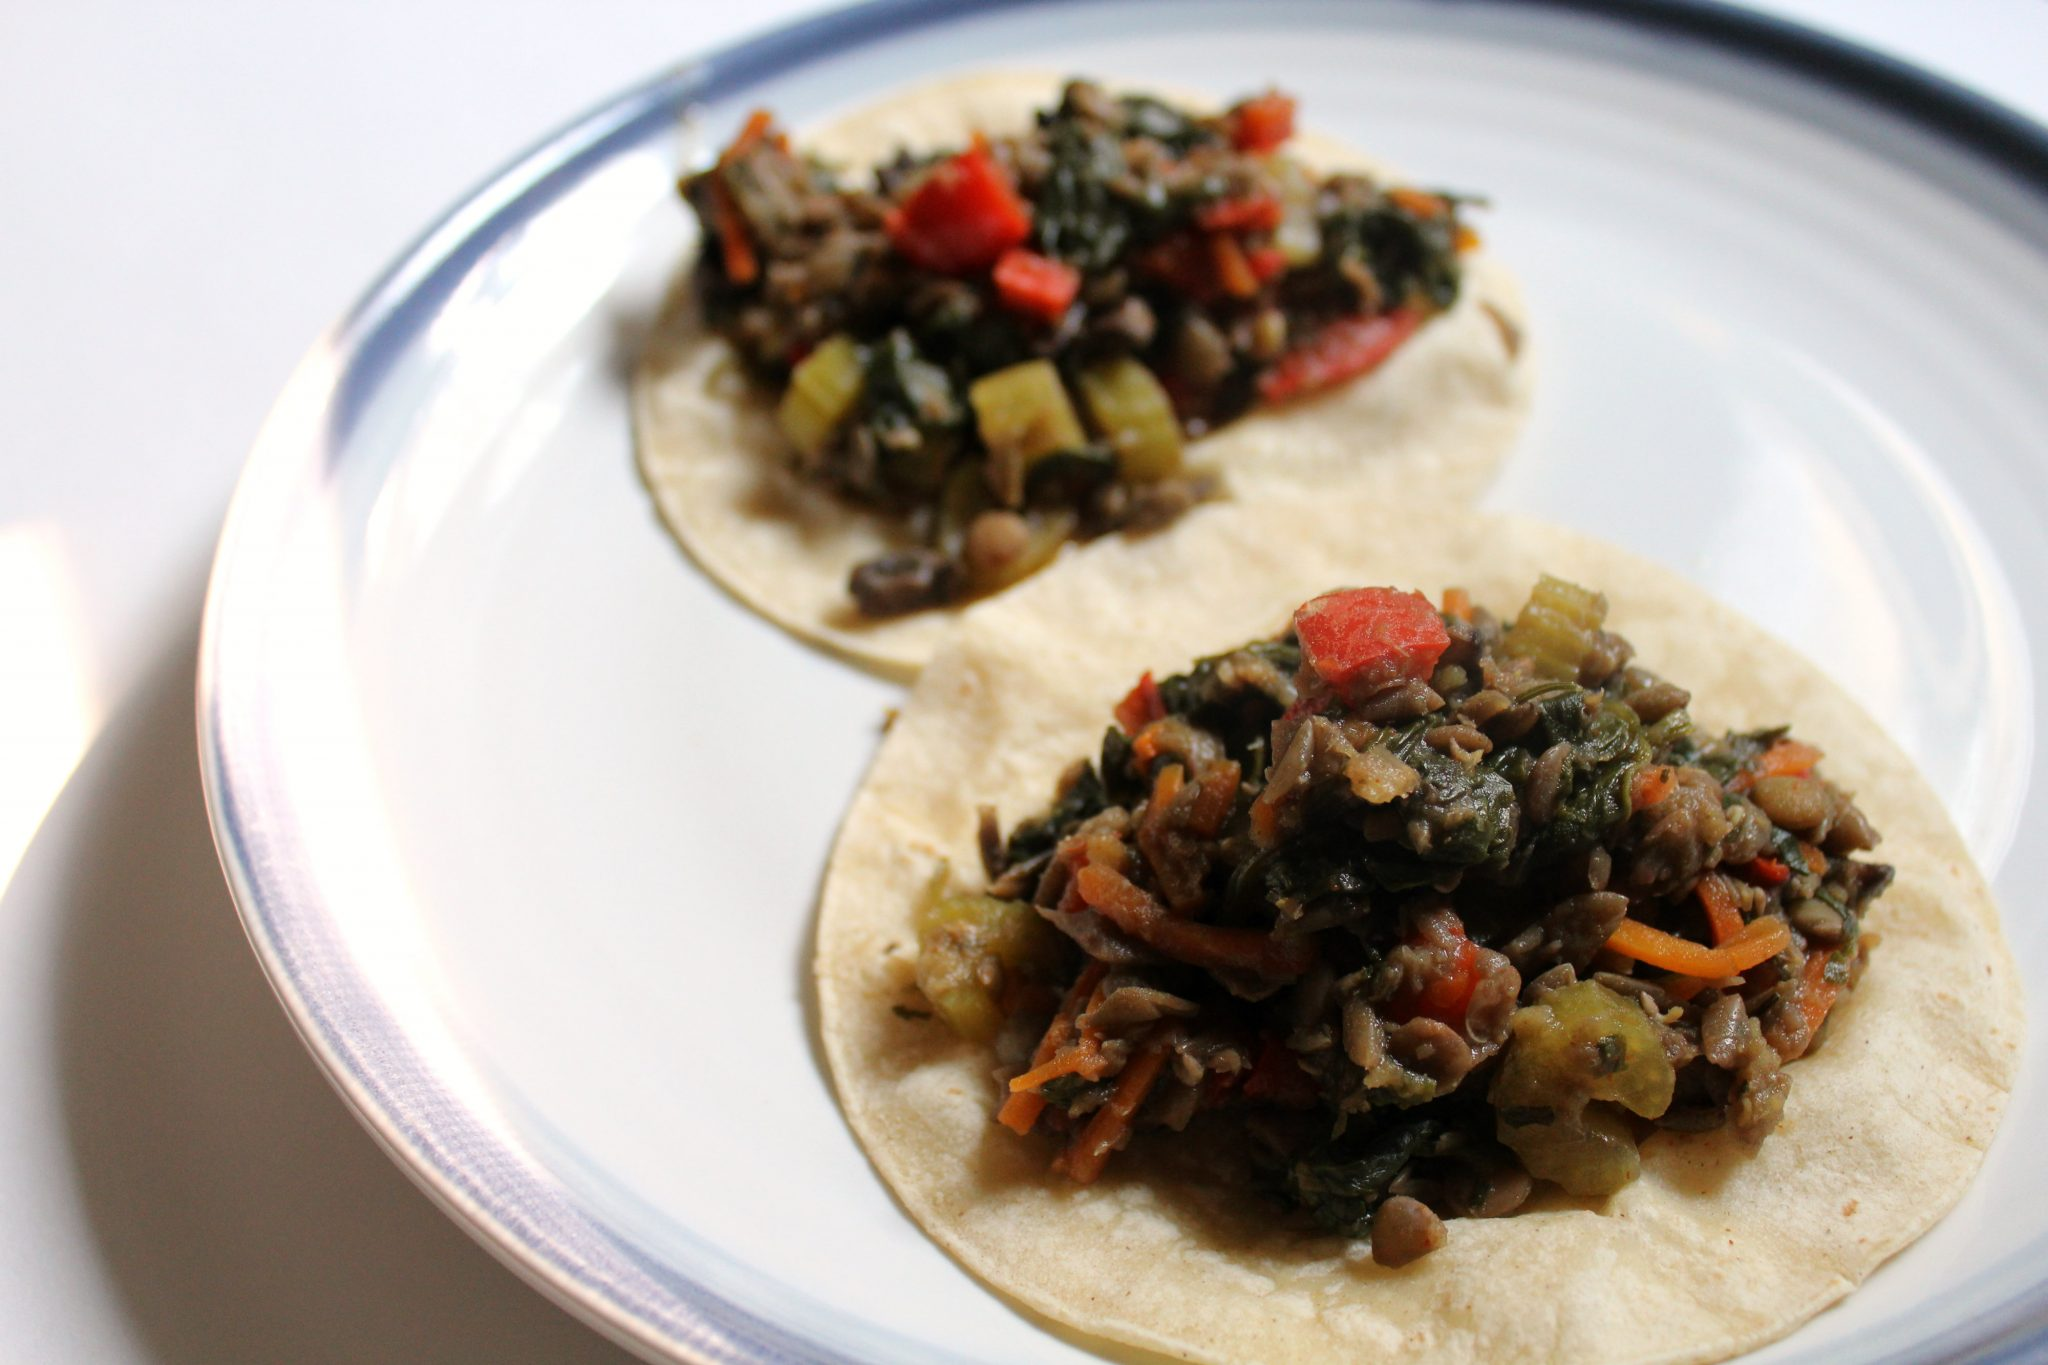 weeknight dinner recipe to satisfy your taco crazy in a healthy way ...